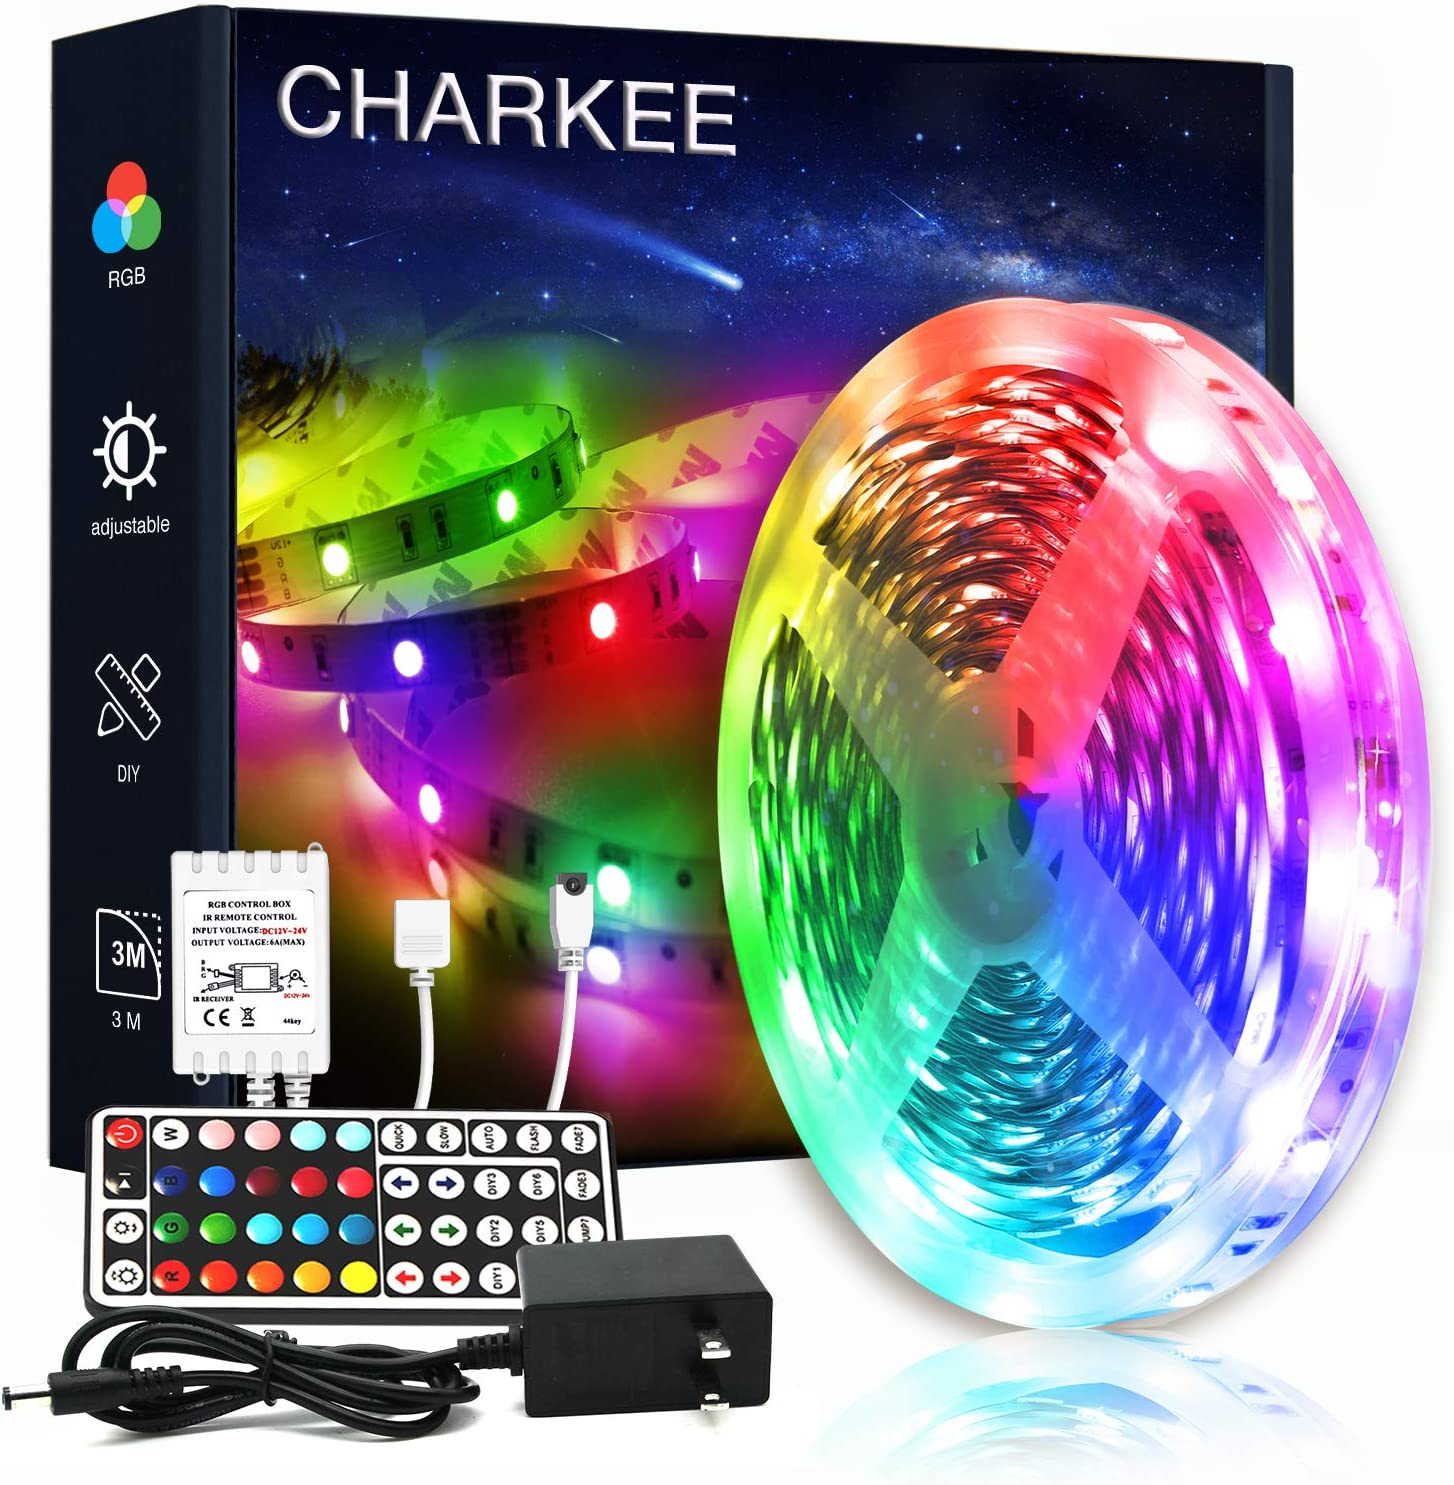 CHARKEE Led Lights for Bedroom 16.4ft Max 84% OFF Ligh of Roll 1 Safety and trust